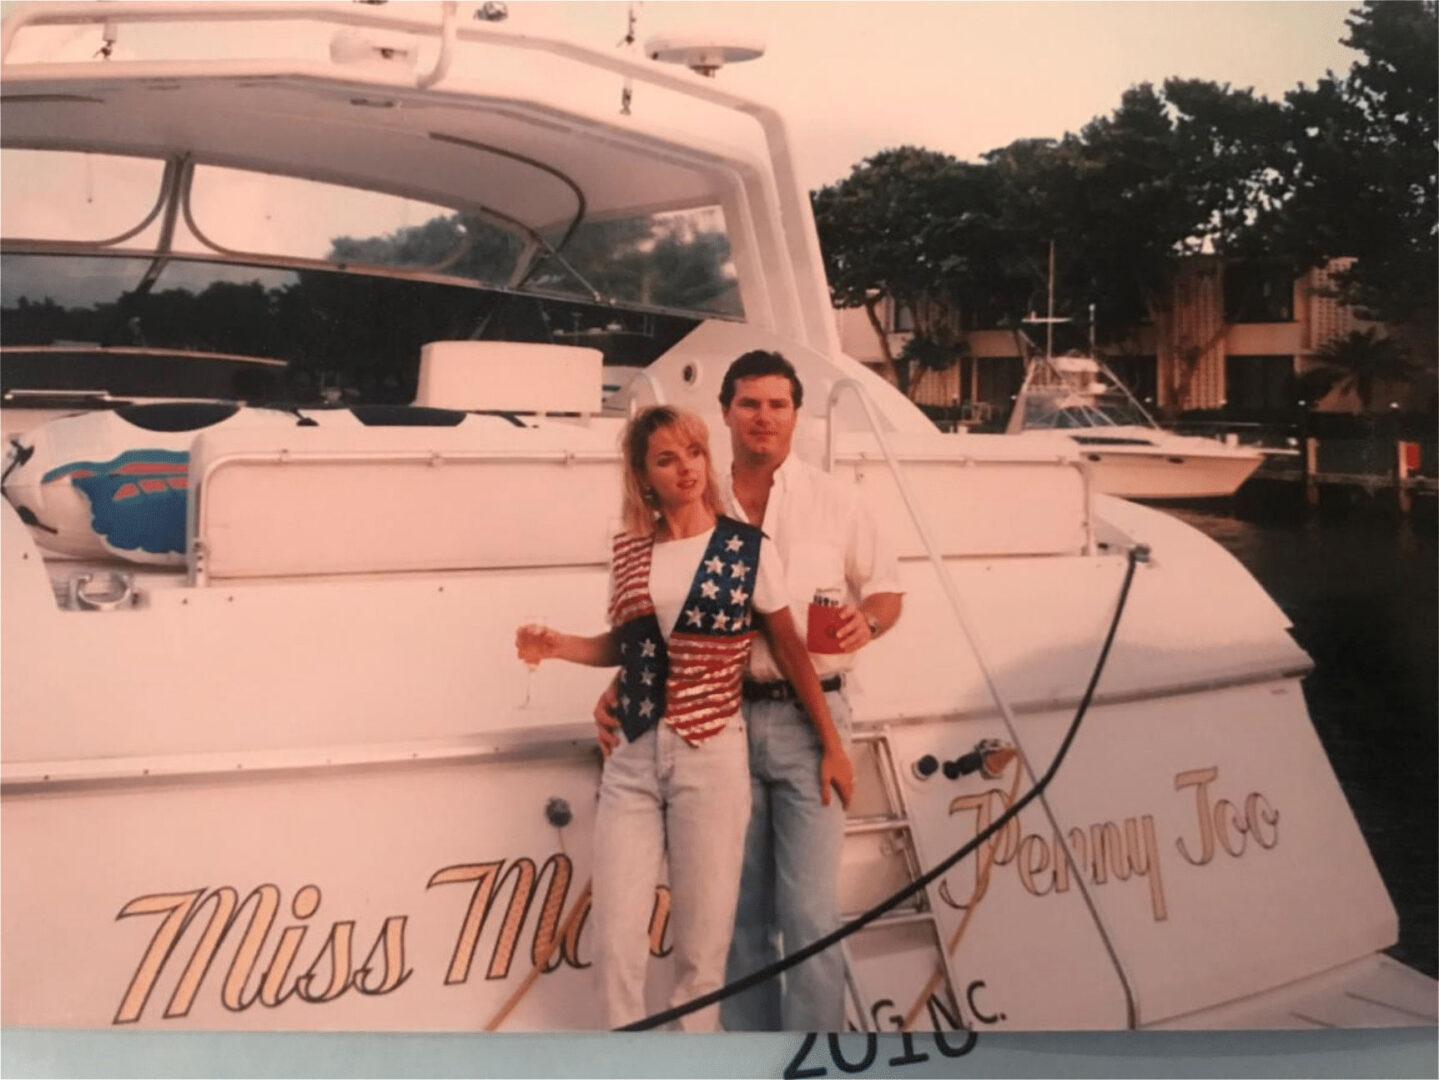 A couple taking a photo in front of a yacht